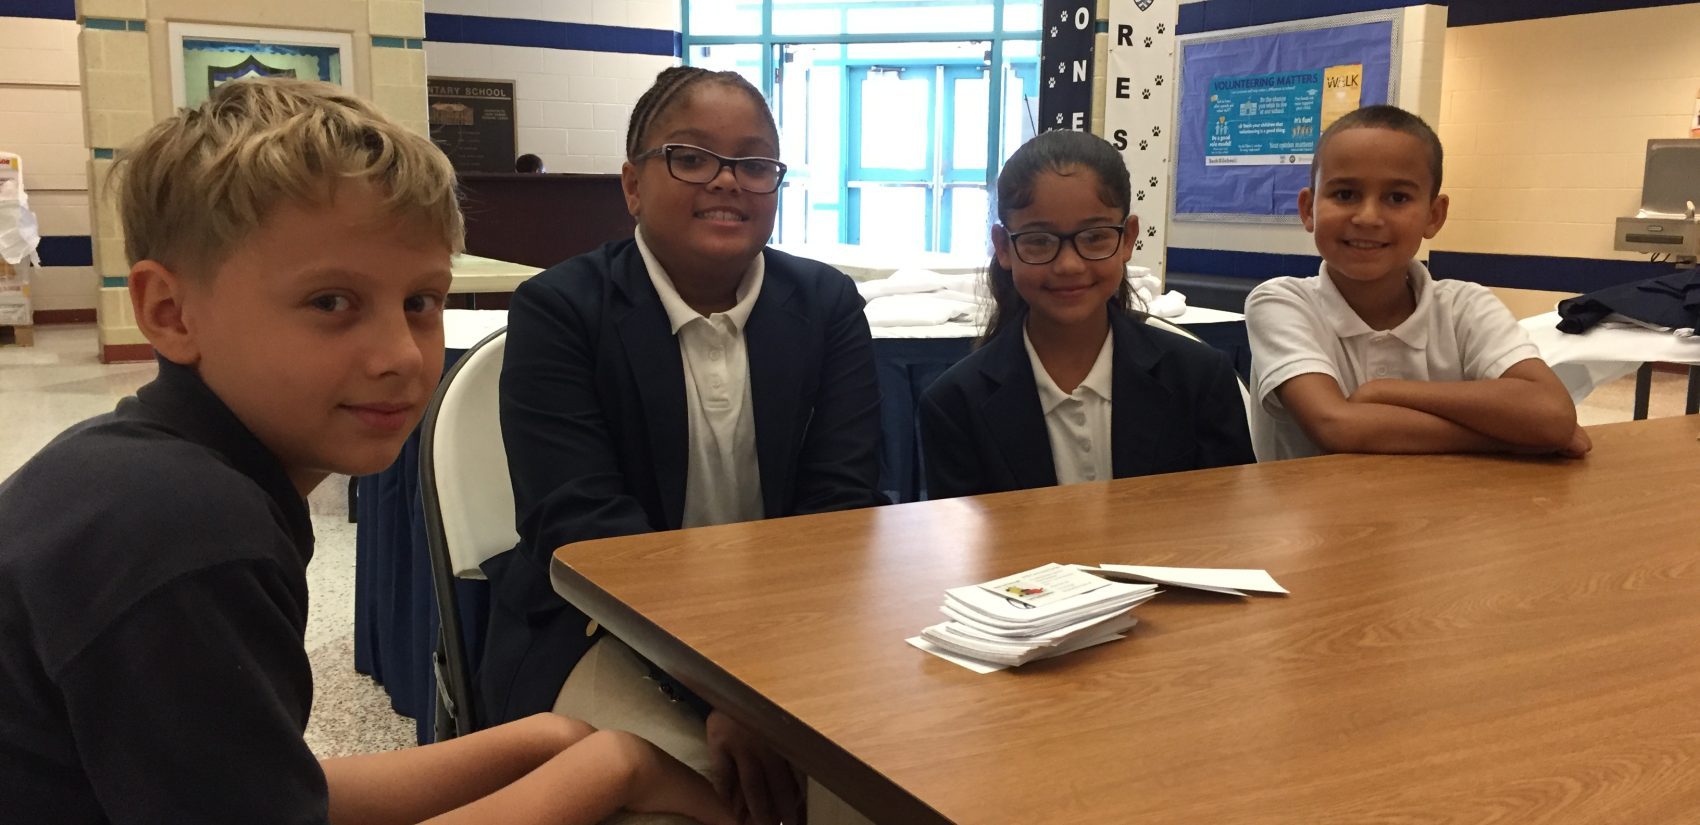 (From L to R) Lincoln Charter School students Samuel Martinez, ShaTayla Bailey, Eliangeliz Echevarria, and Joseph Rosario Rodriguez.(Avi Wolfman-Arent/WHYY)